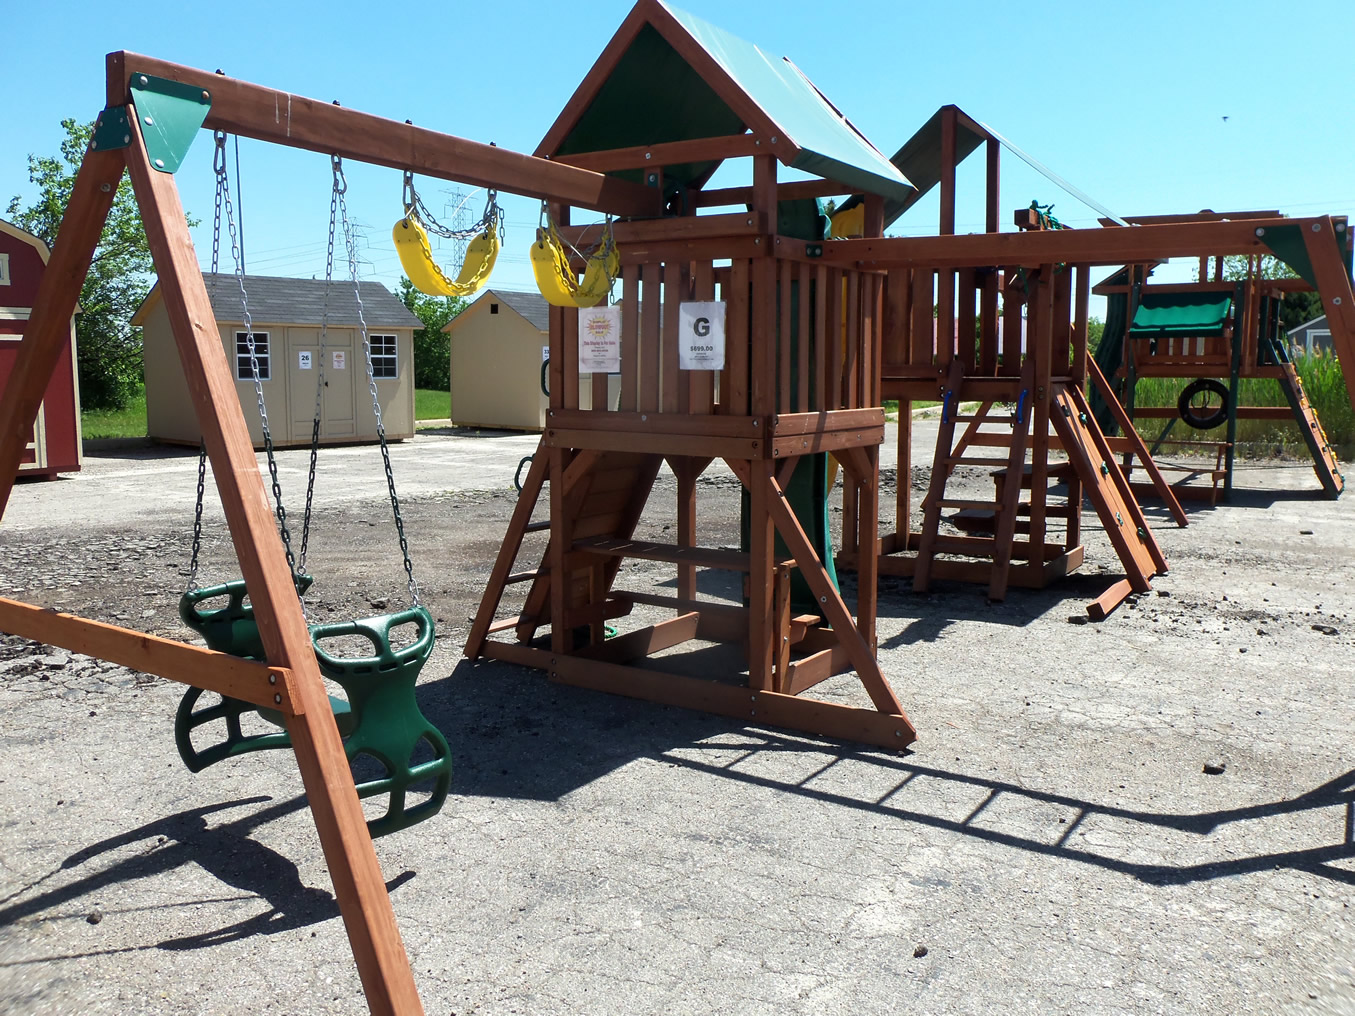 backyard adventures wooden playsets swing sets in michigan on sale